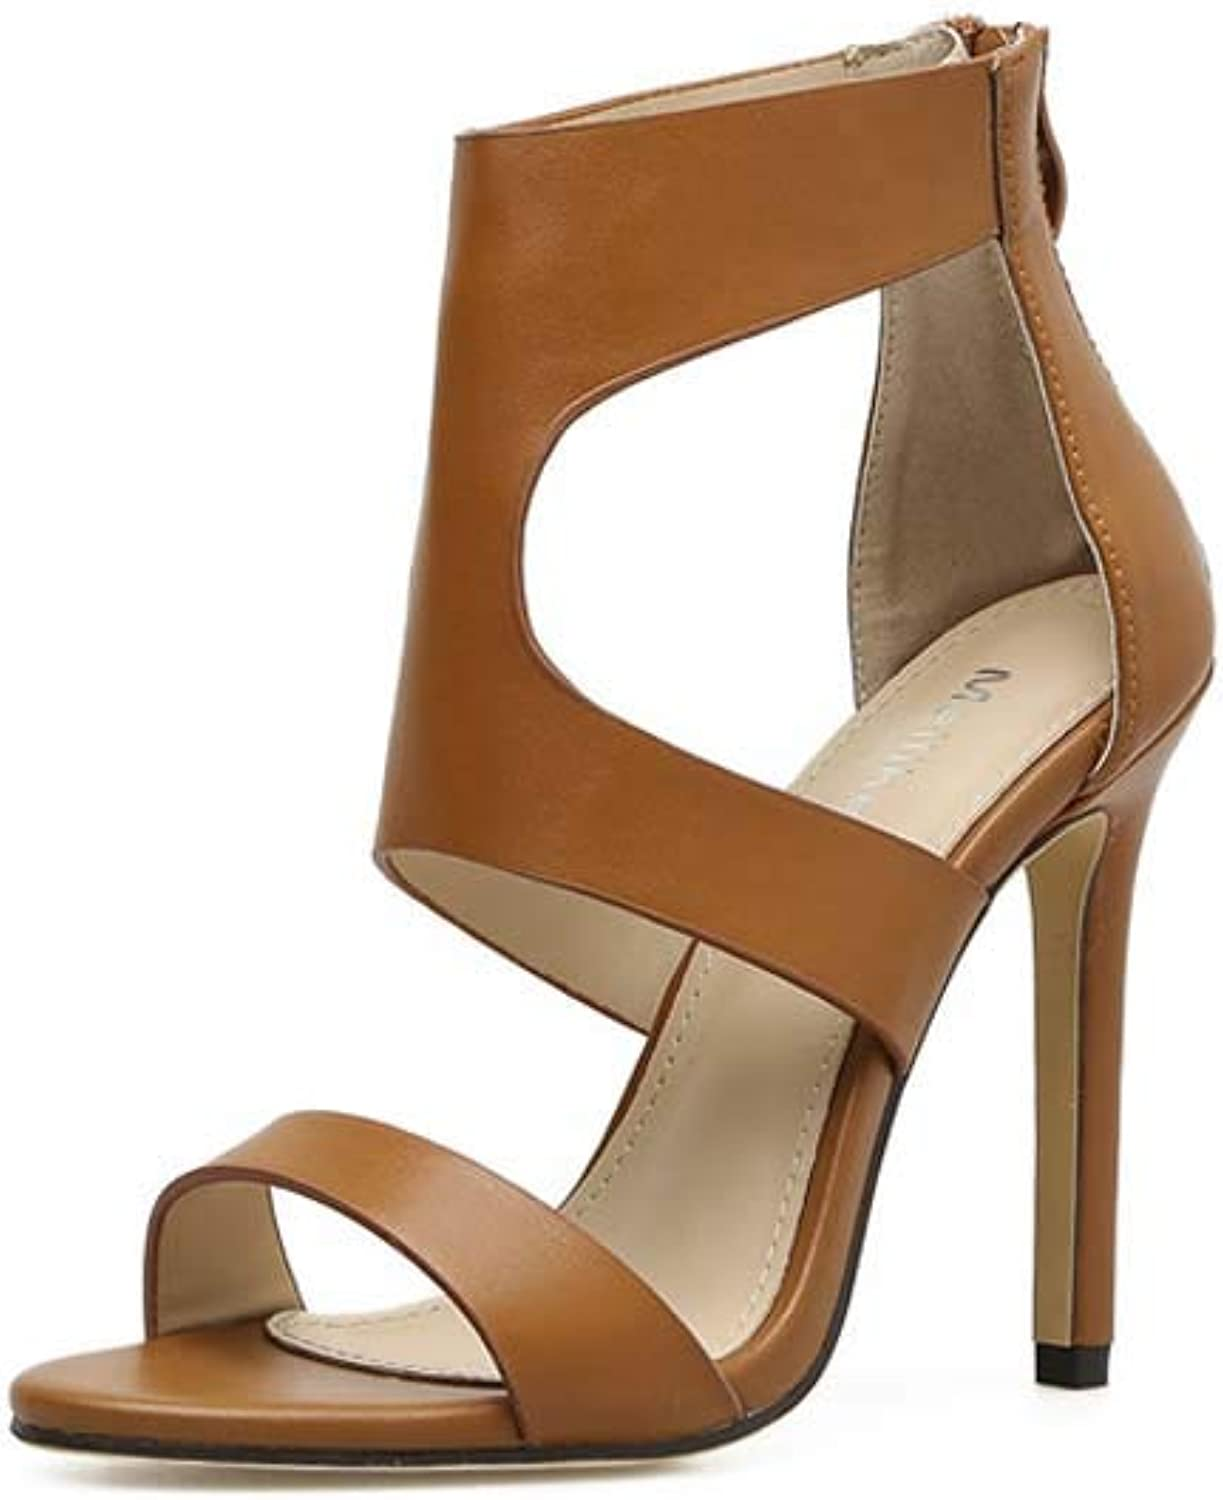 Women Roman Sandals,New Leather Open Toe shoes,Ethnic Style Chain Gorgeous High Stiletto Heels Large Size